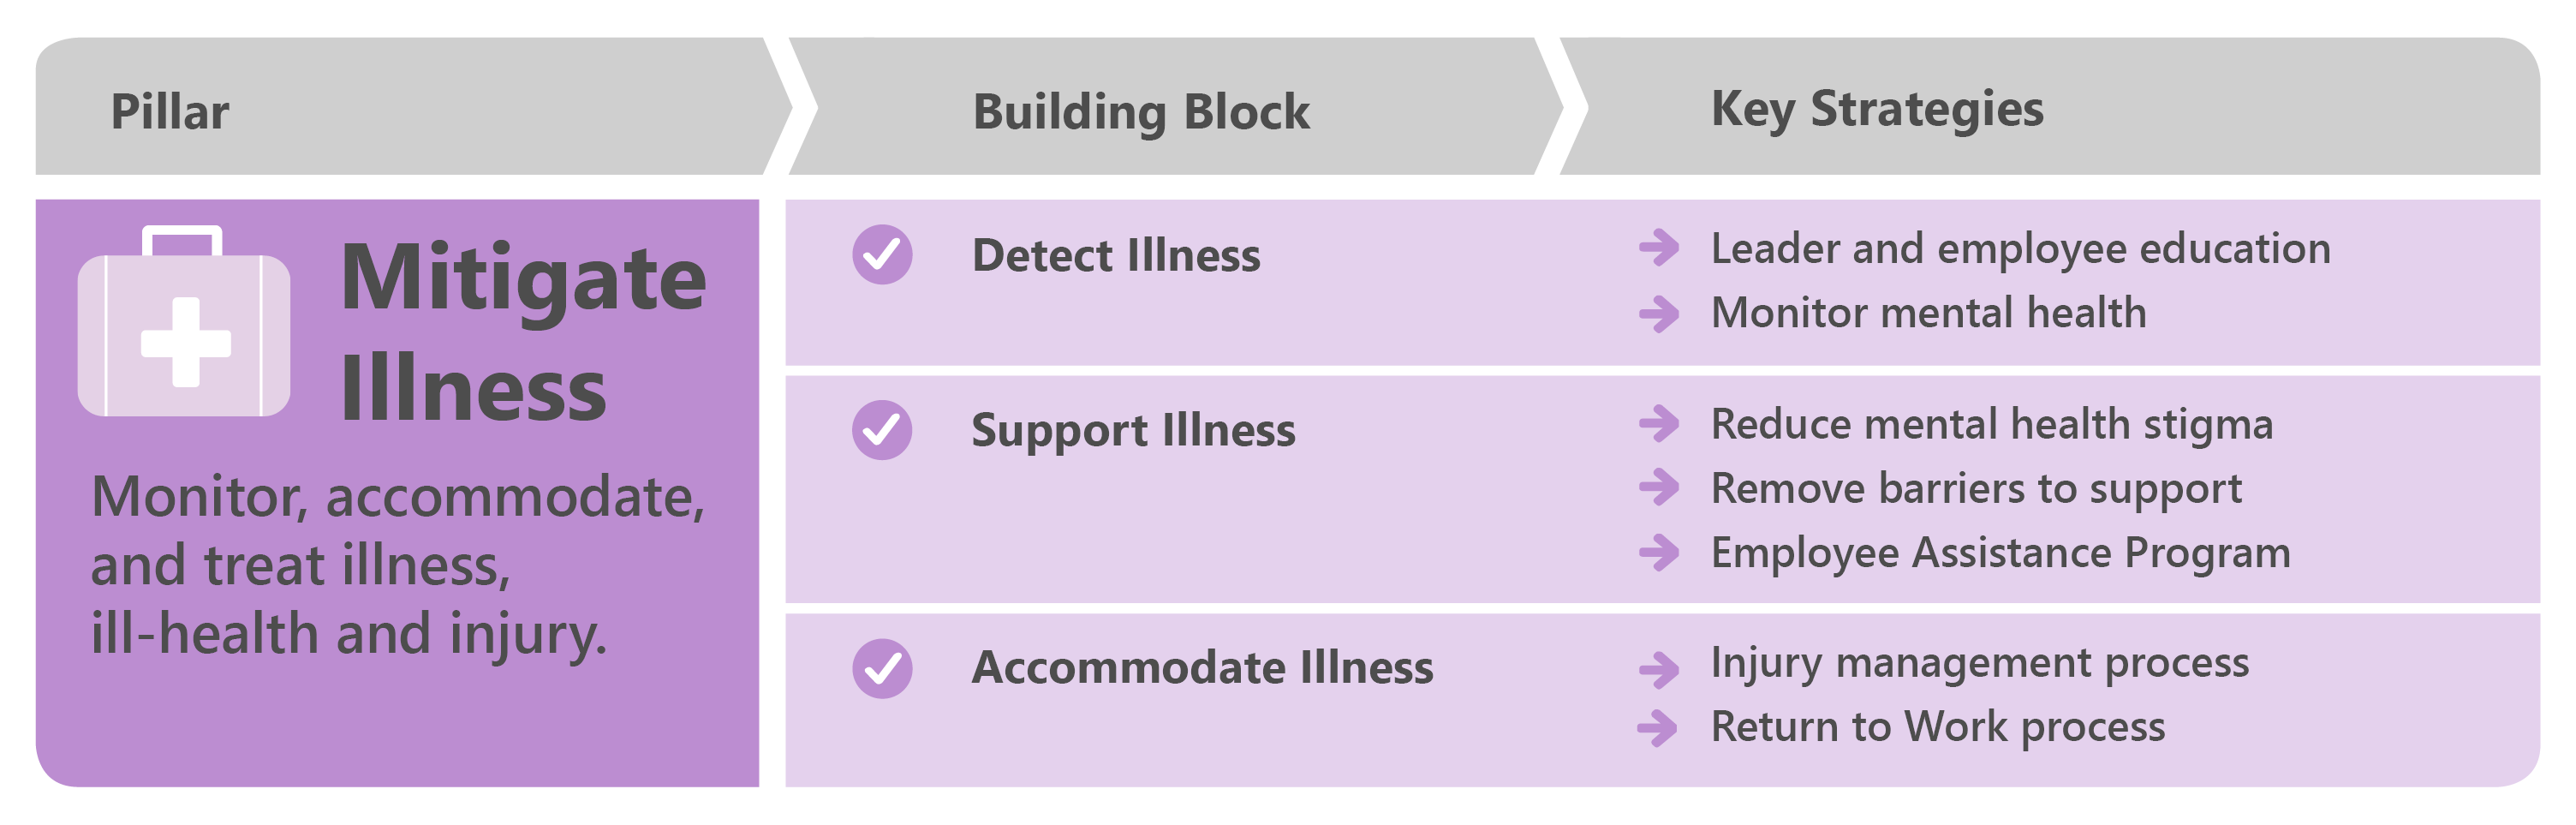 Mitigate Illness pillar table showing building blocks, and key strategies.